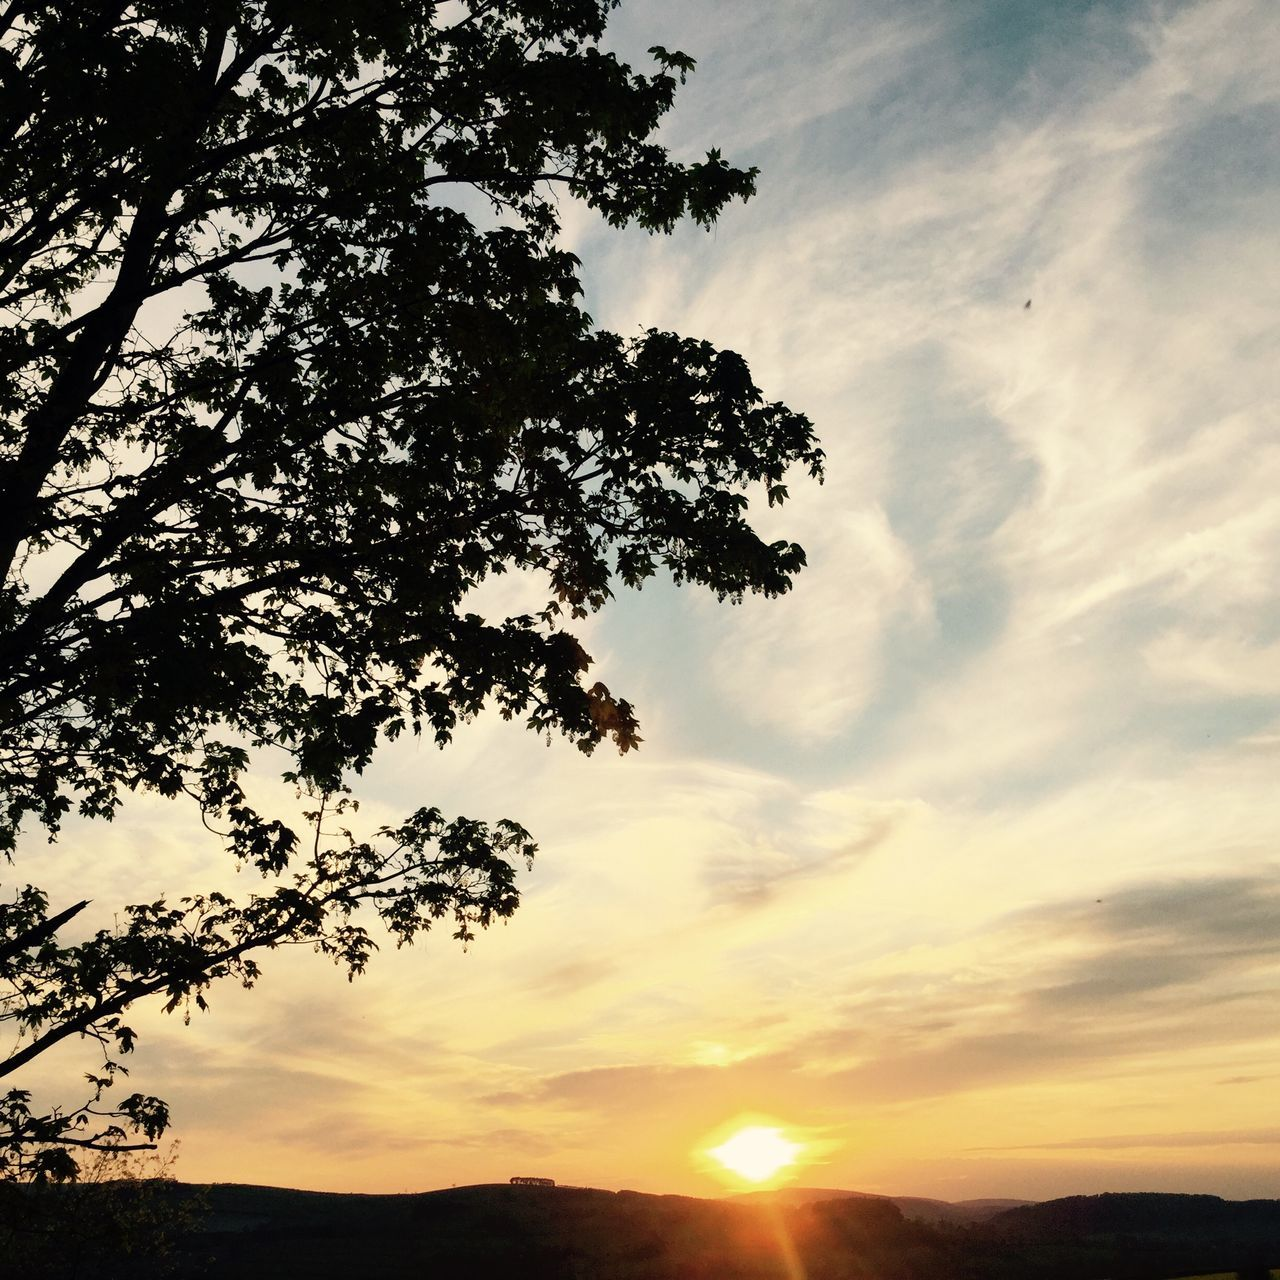 sunset, tree, beauty in nature, sky, nature, scenics, low angle view, sun, cloud - sky, tranquil scene, tranquility, silhouette, no people, outdoors, growth, branch, day